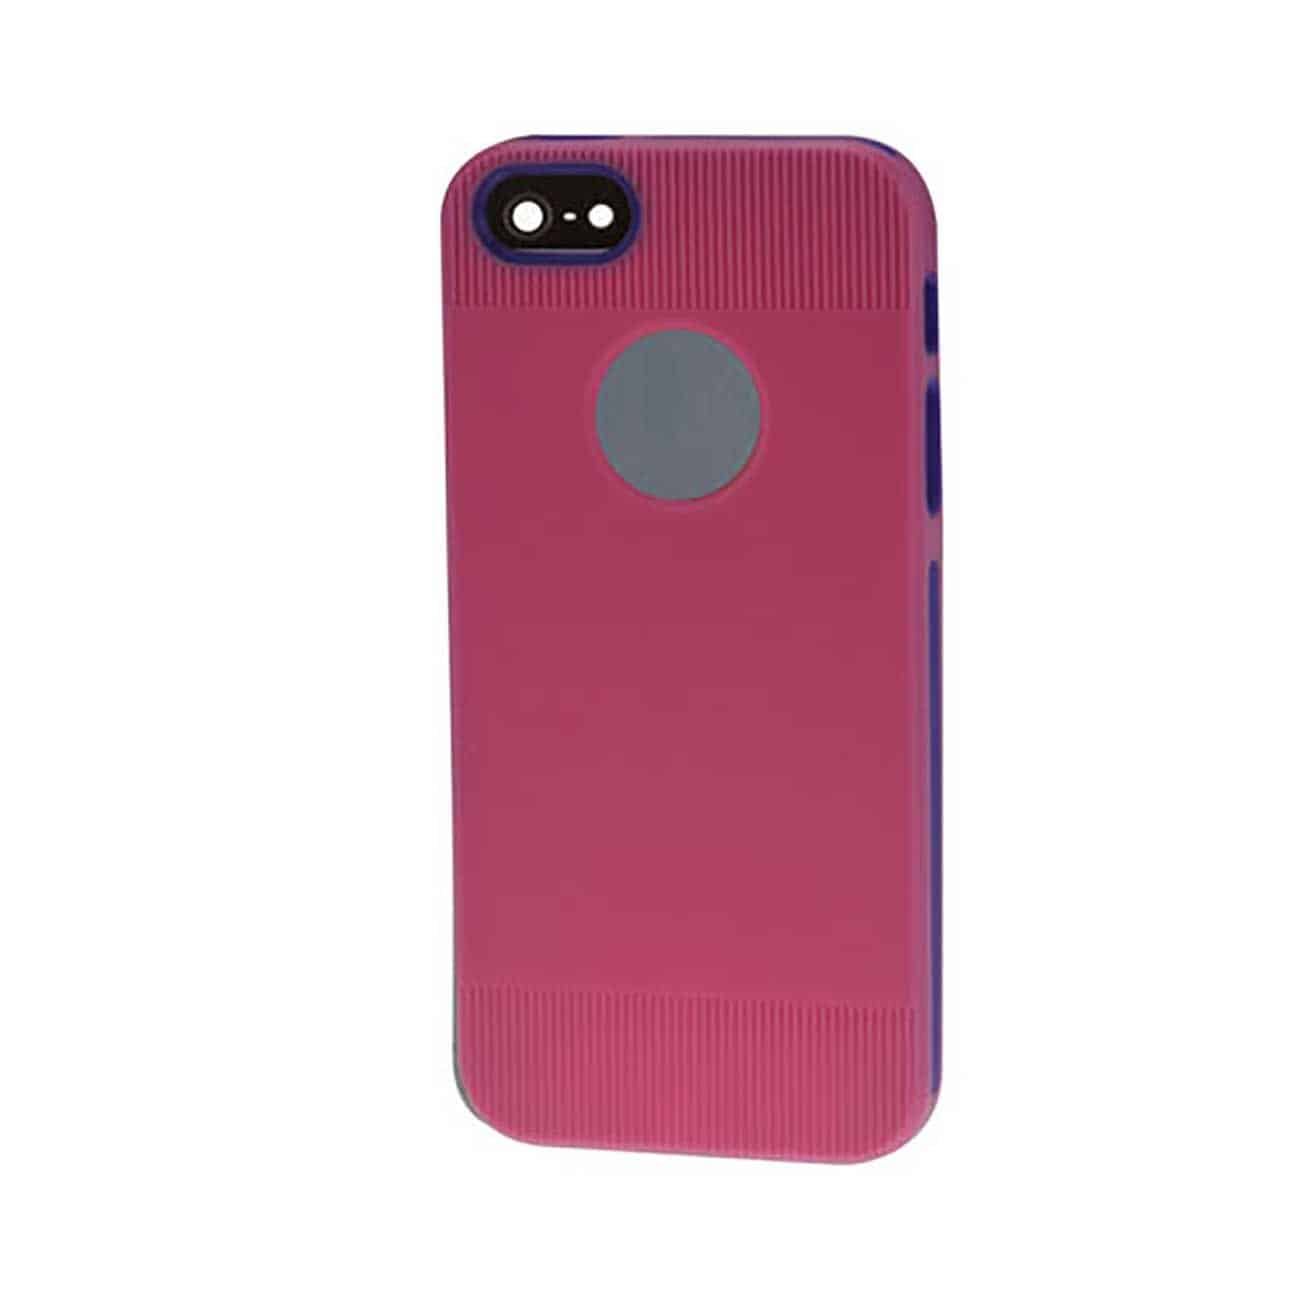 IPHONE SE/ 5S/ 5 DUAL COLOR CASE WITH RIDGES IN PINK PURPLE